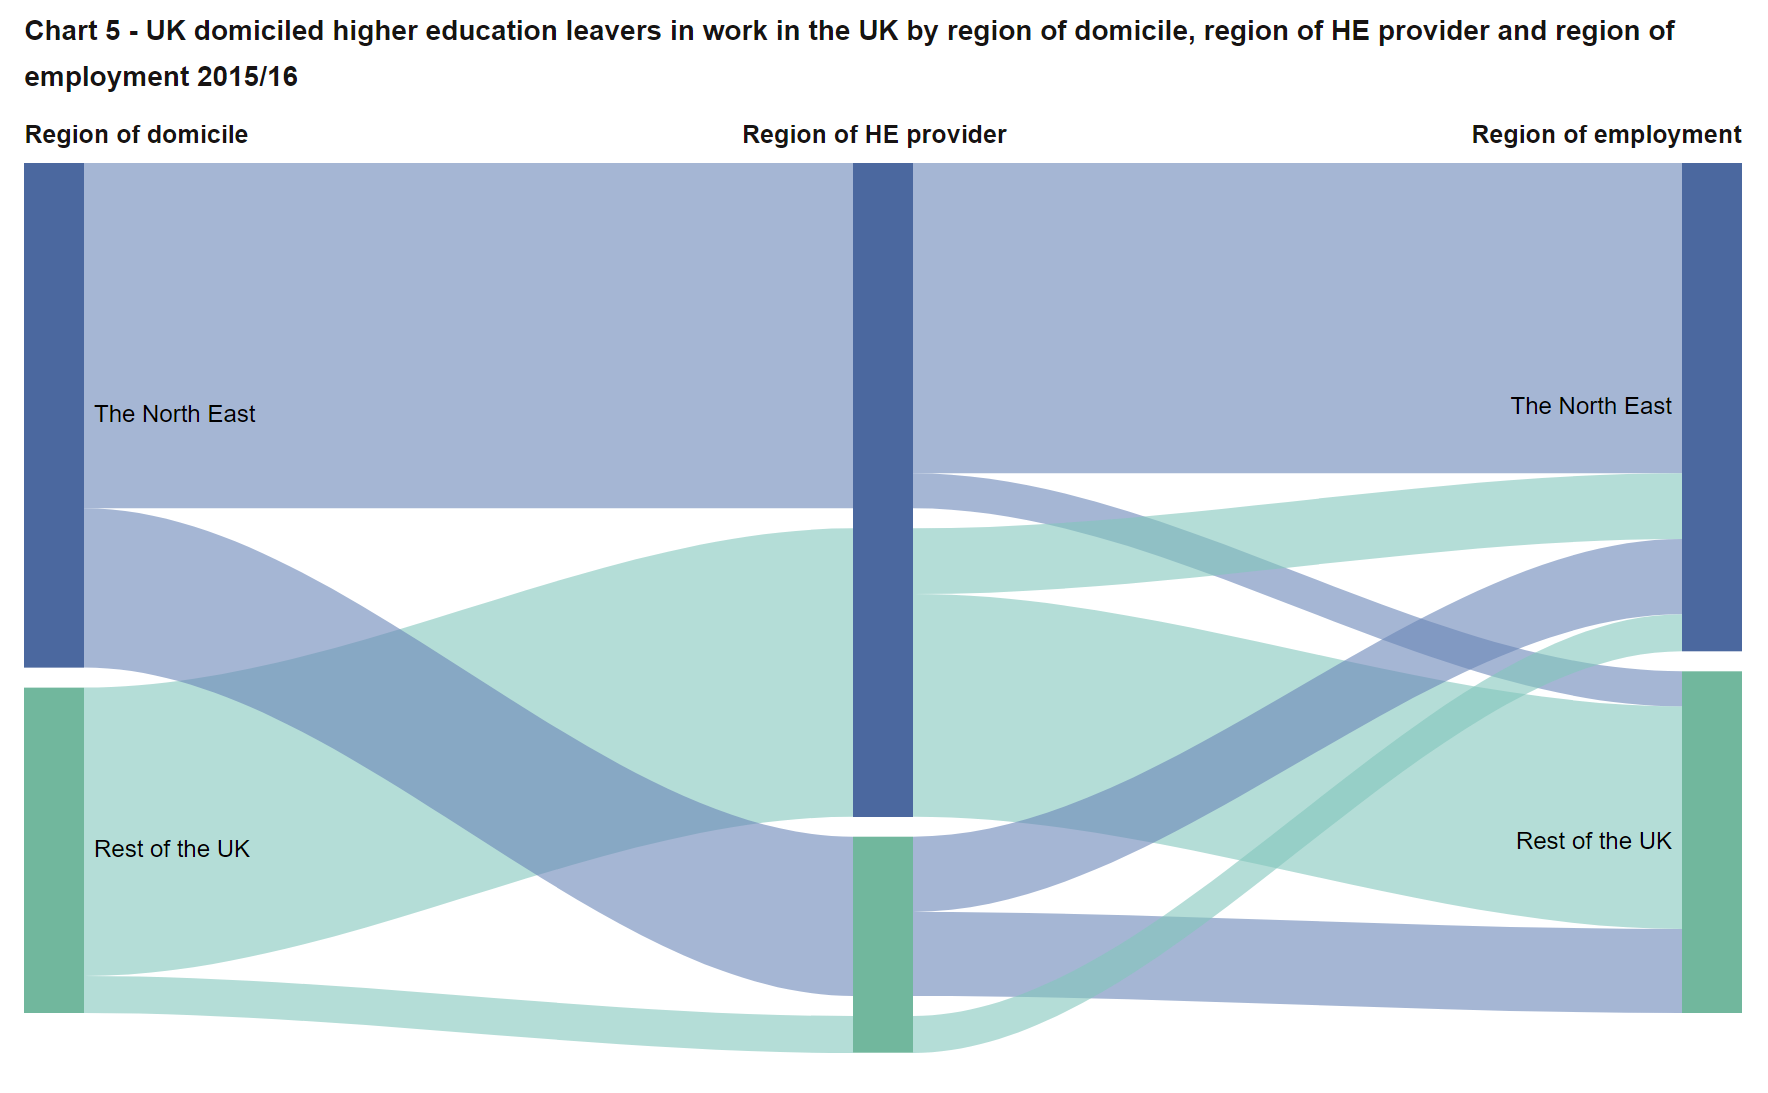 SFR245: Chart 5 - UK domiciled higher education leavers in work in the UK by region of domicile, region of HE provider and region of employment 2015/16